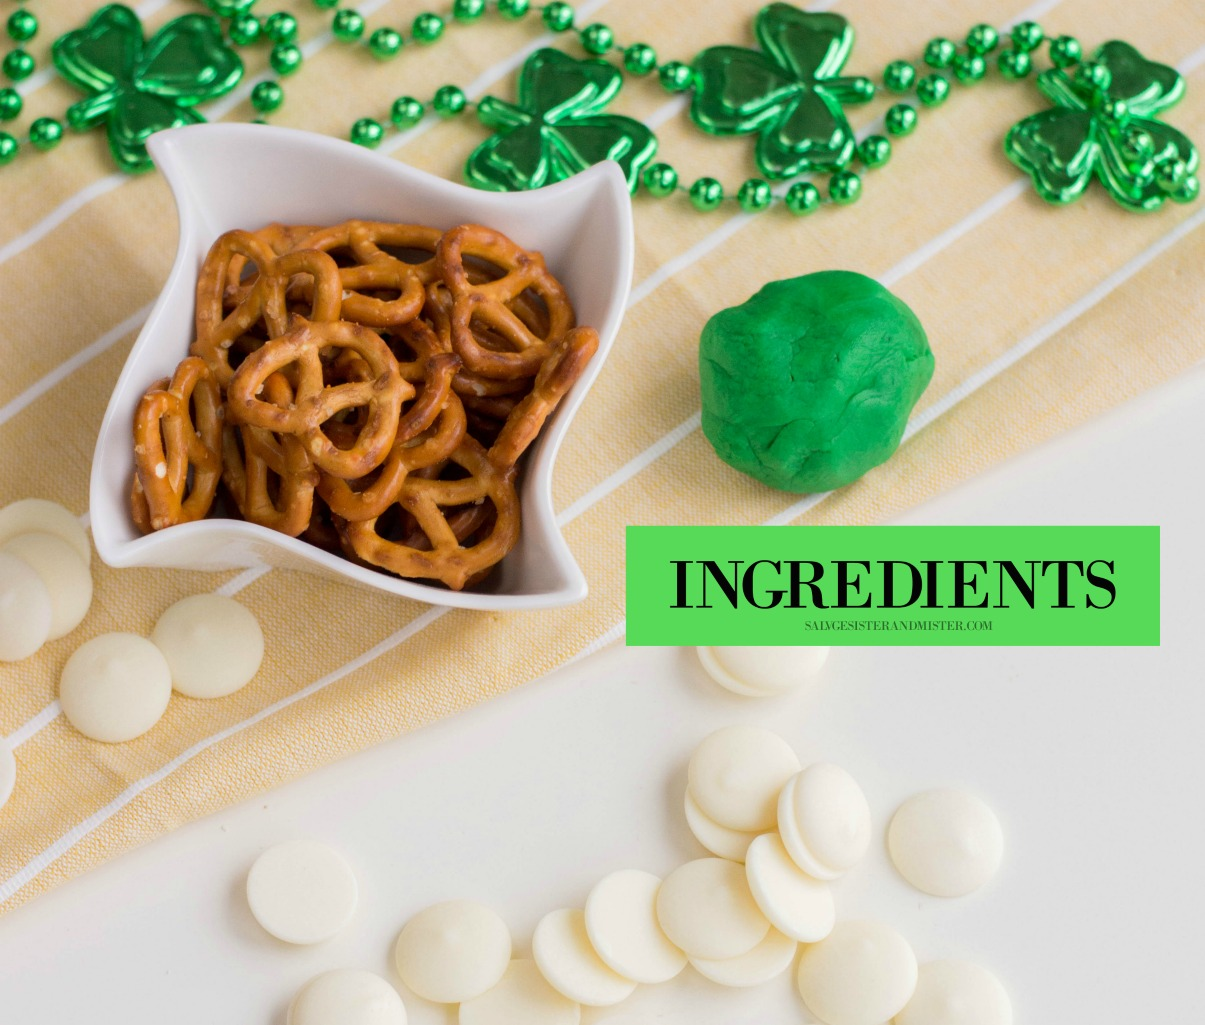 Ingredients for easy shamrock pretzel snacks on salvagesisterandmister.com